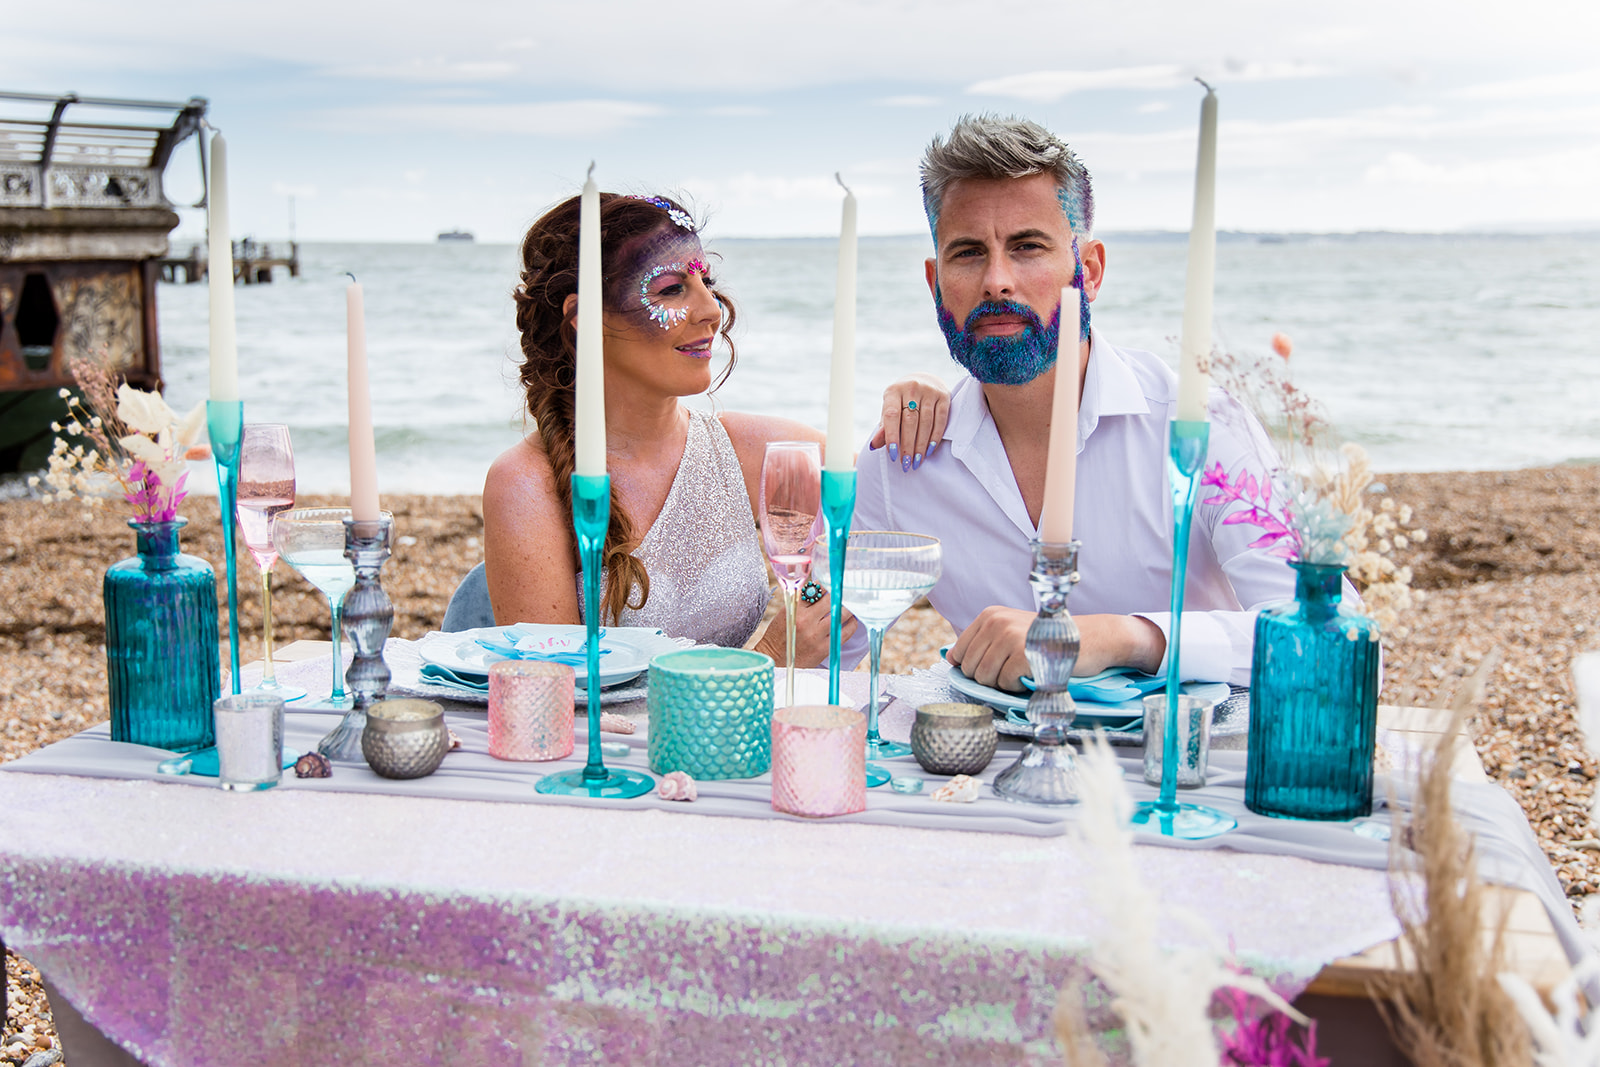 mermaid wedding - beach wedding - quirky wedding - unique wedding - alternative seaside wedding - alternative wedding - wedding beard glitter - wedding face glitter - bride qnd groom sat at table